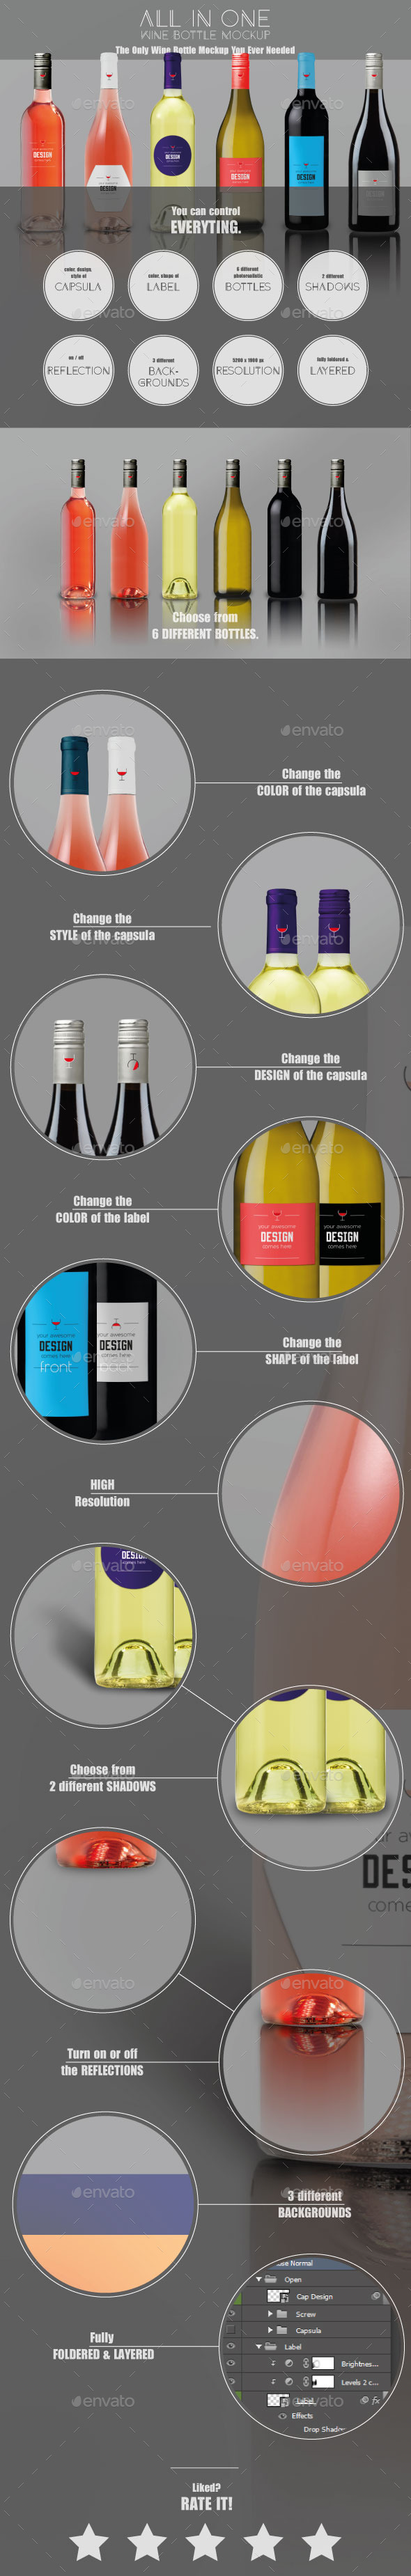 All-In-One Wine Bottle Mockup